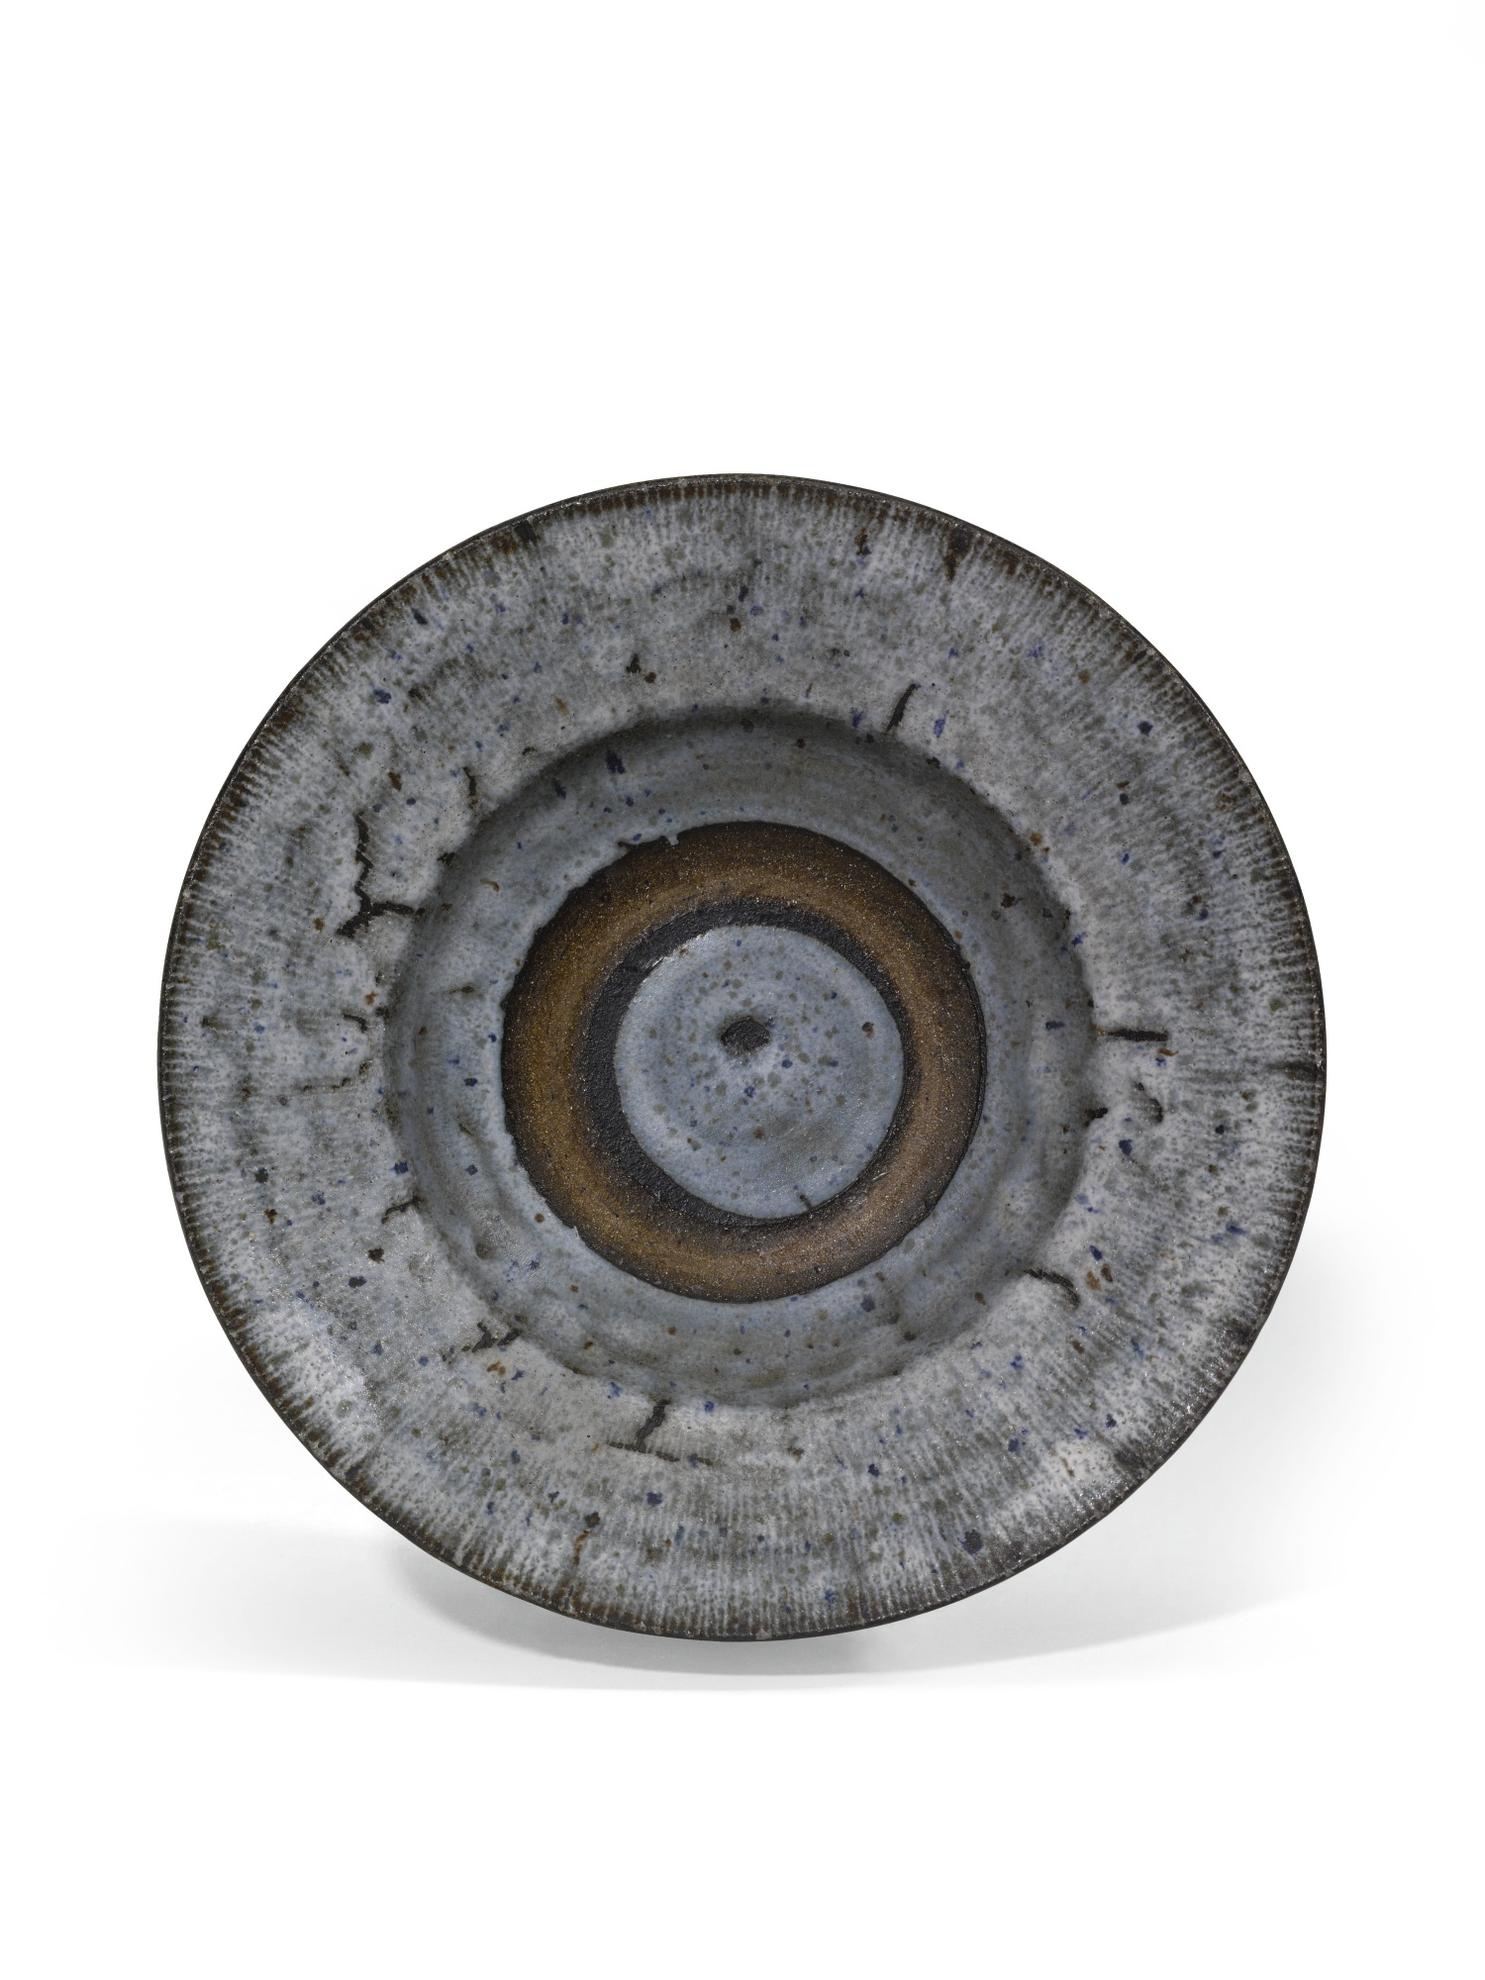 Dame Lucie Rie - Large Stoneware Bowl-1960